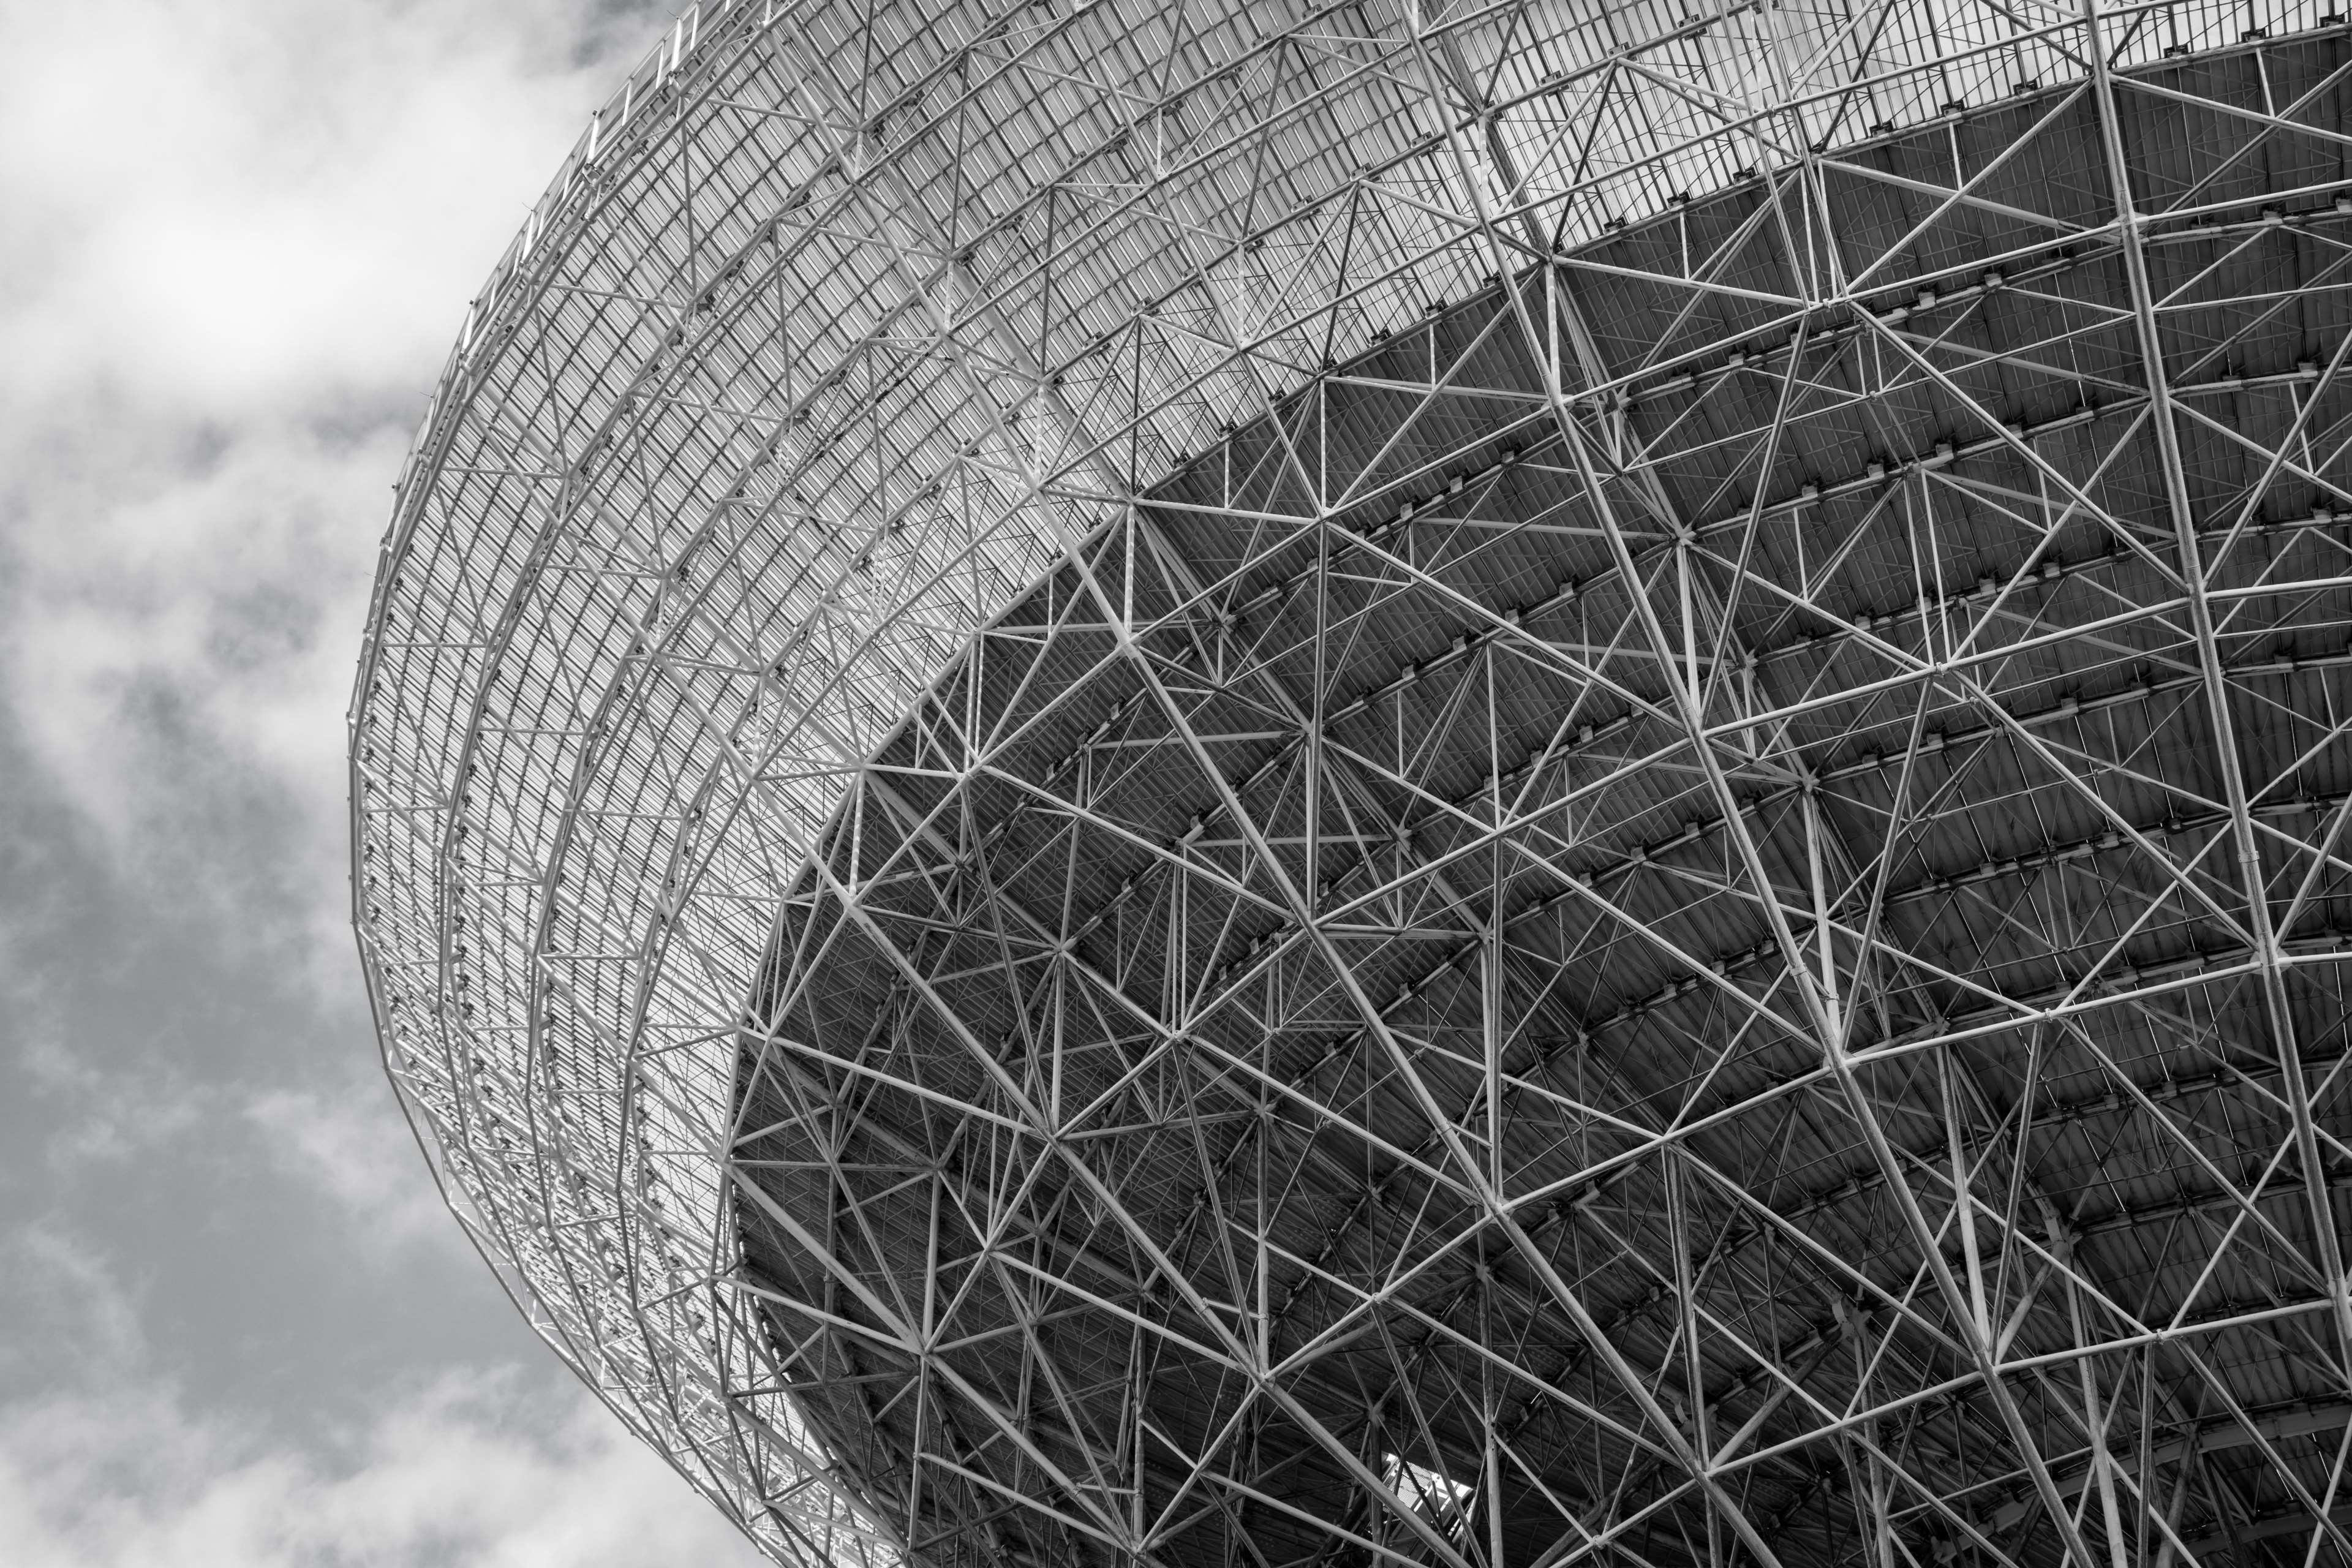 Abstract Antenna Architecture Astronomy Black And